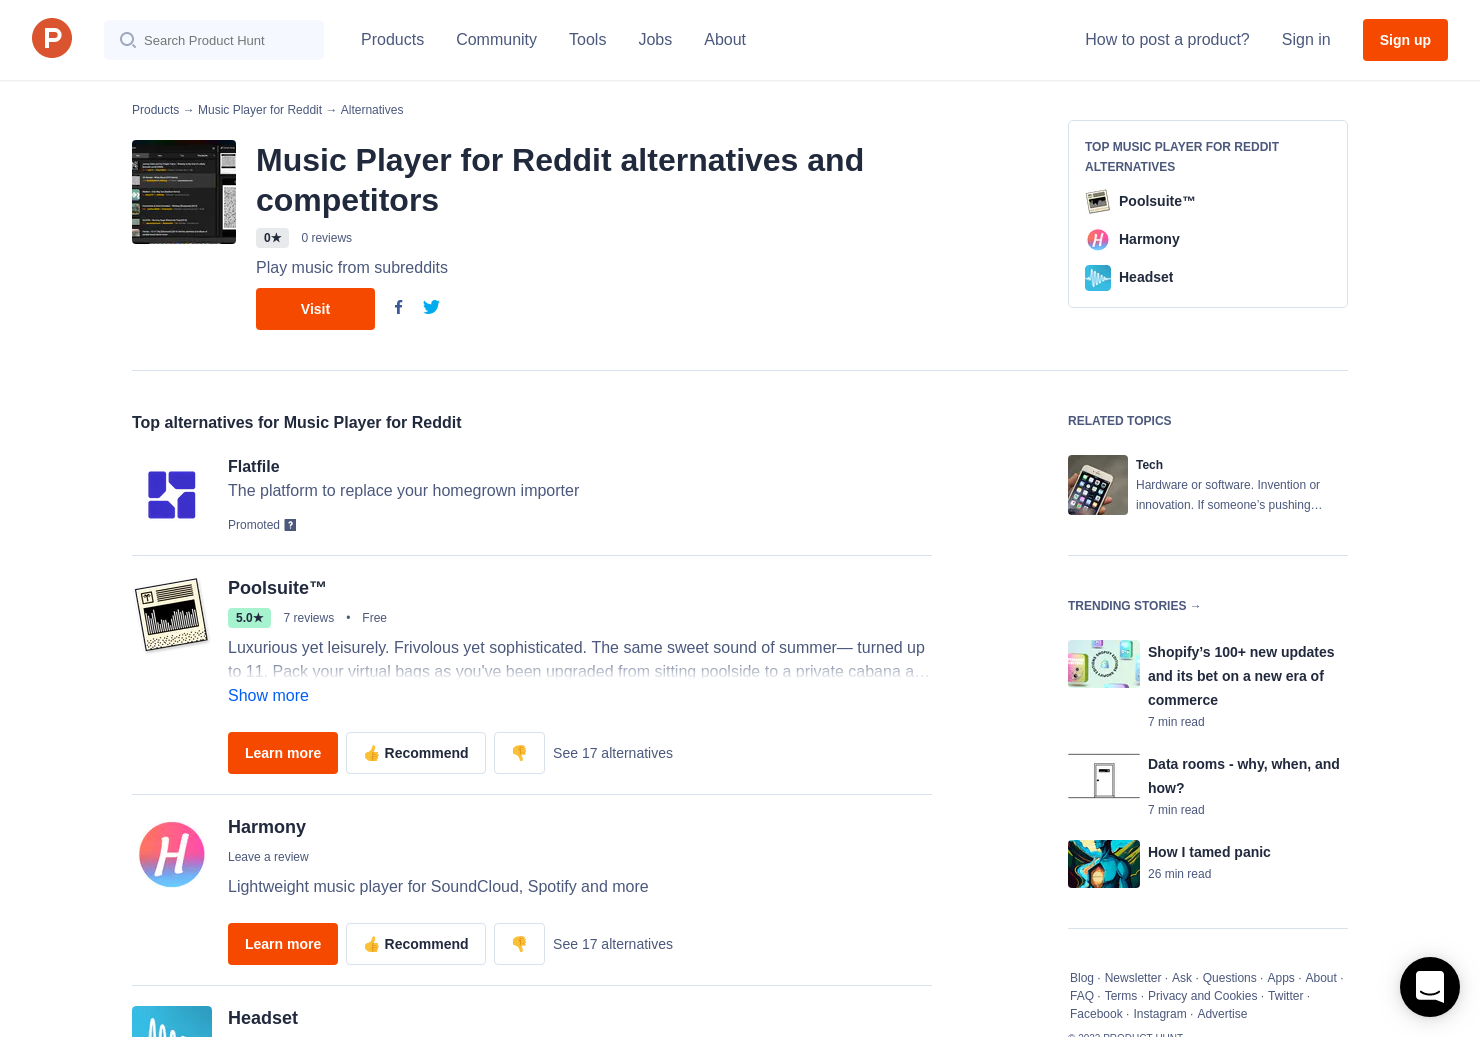 12 Alternatives to Music Player for Reddit | Product Hunt